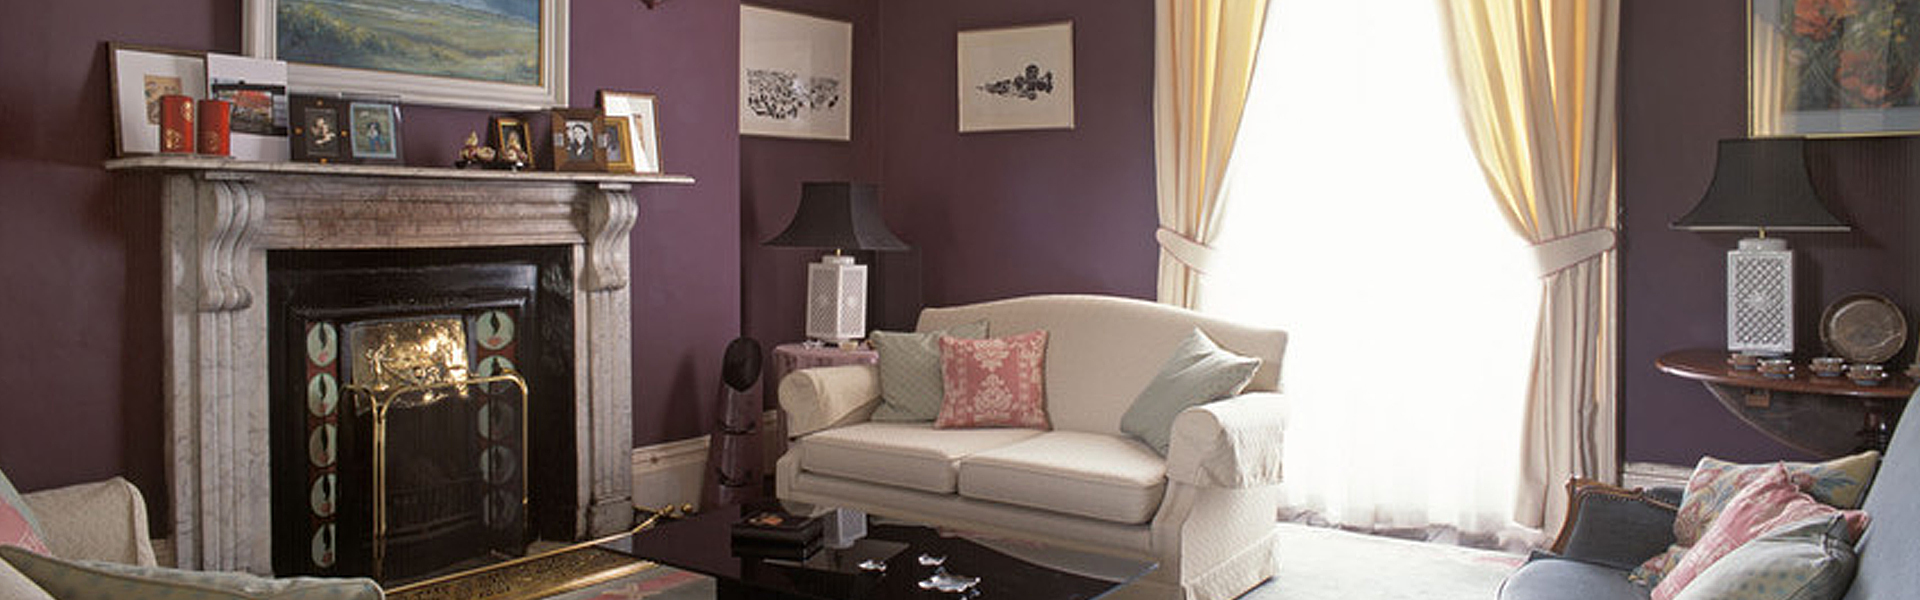 Transform your living spaces with Sam Brown, Hertfordshire's best painter and decorator